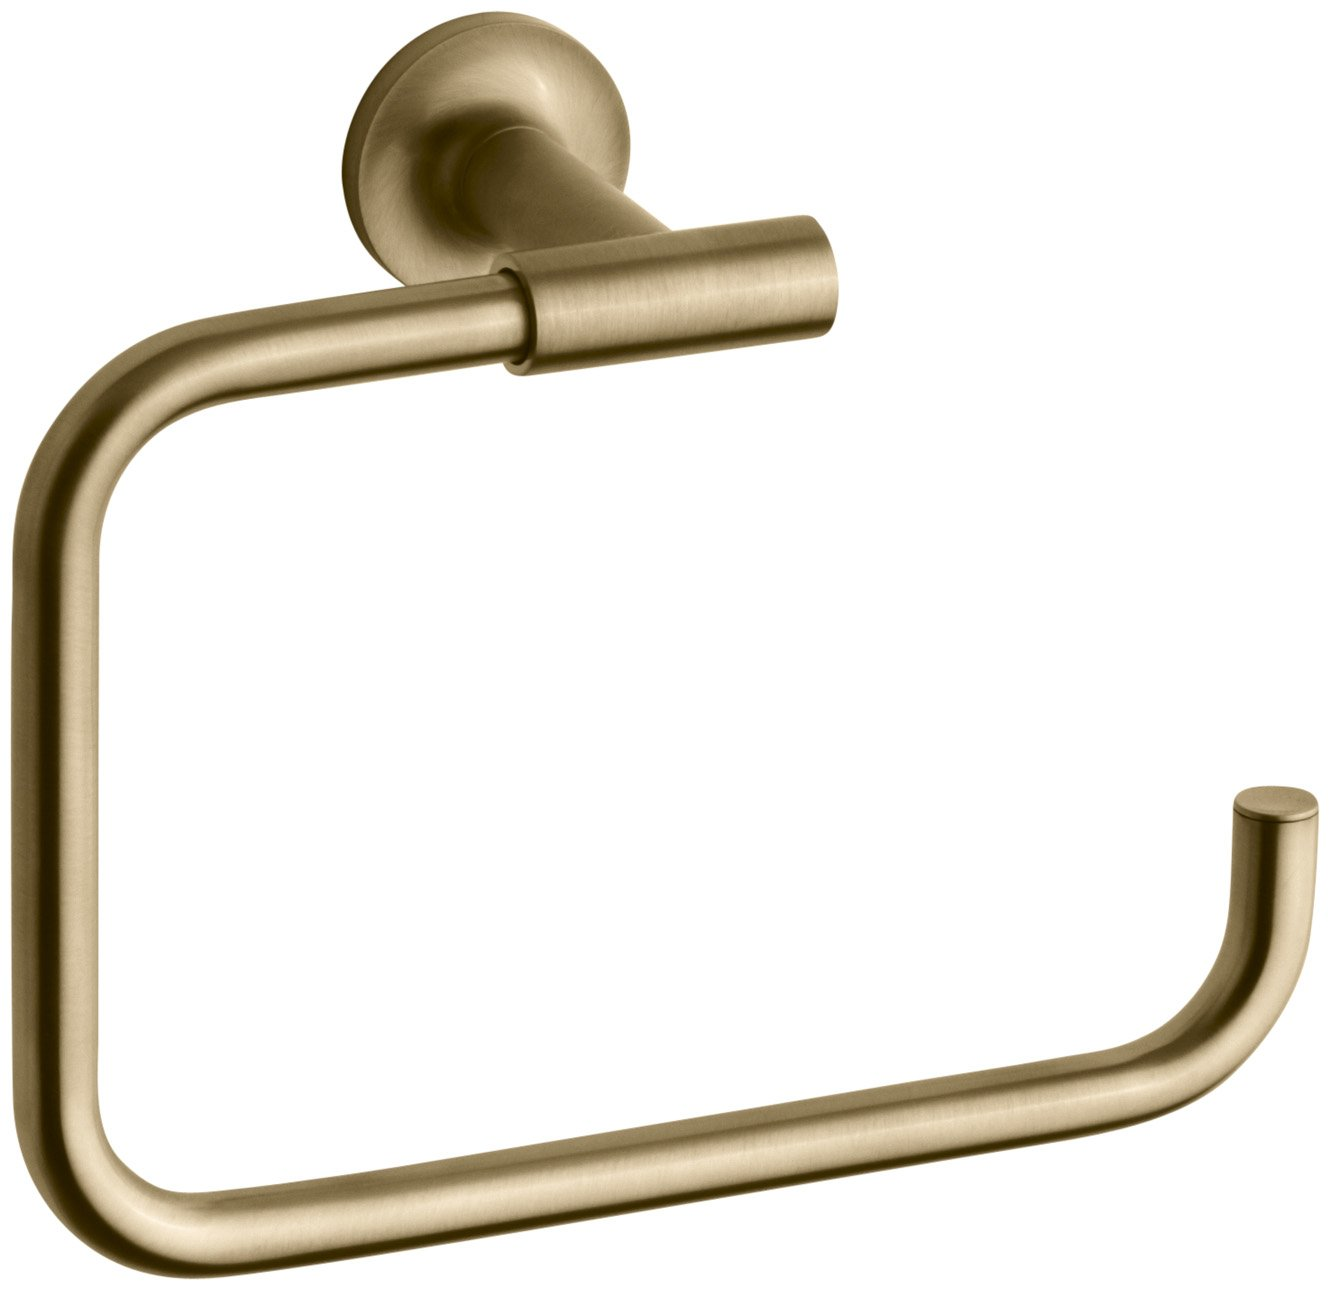 Beautiful  BGD Purist Towel Bar Bathroom Accessory  Vibrant Moderne Brushed Gold